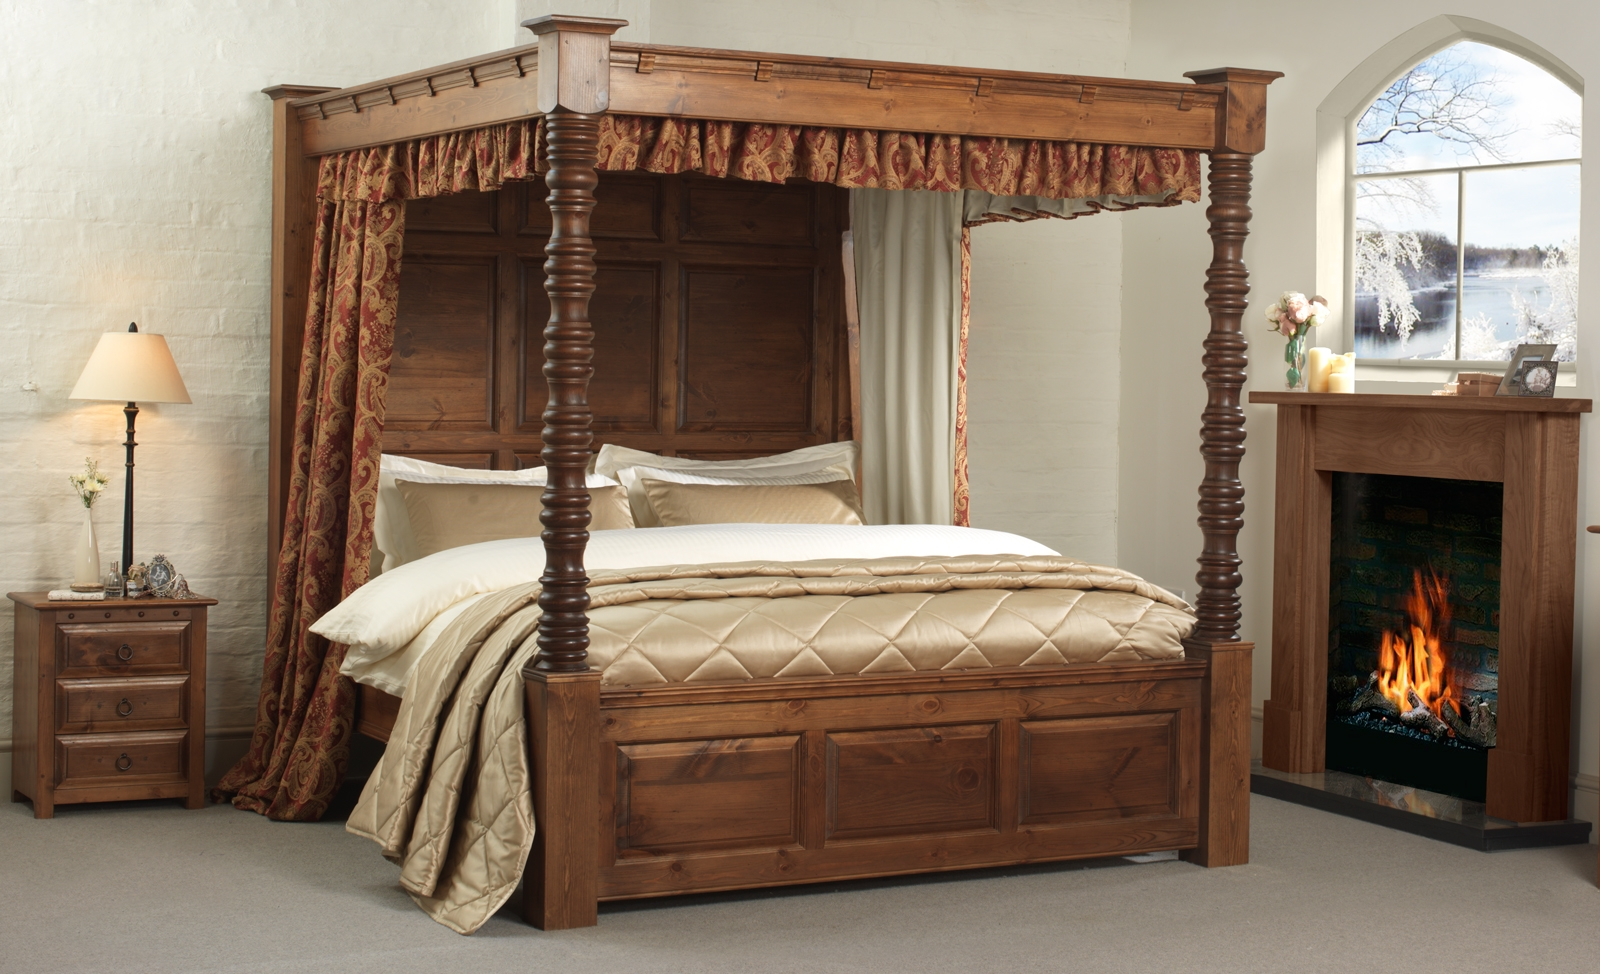 Knickerbocker Embrace Twin Bed Framebed Architecture